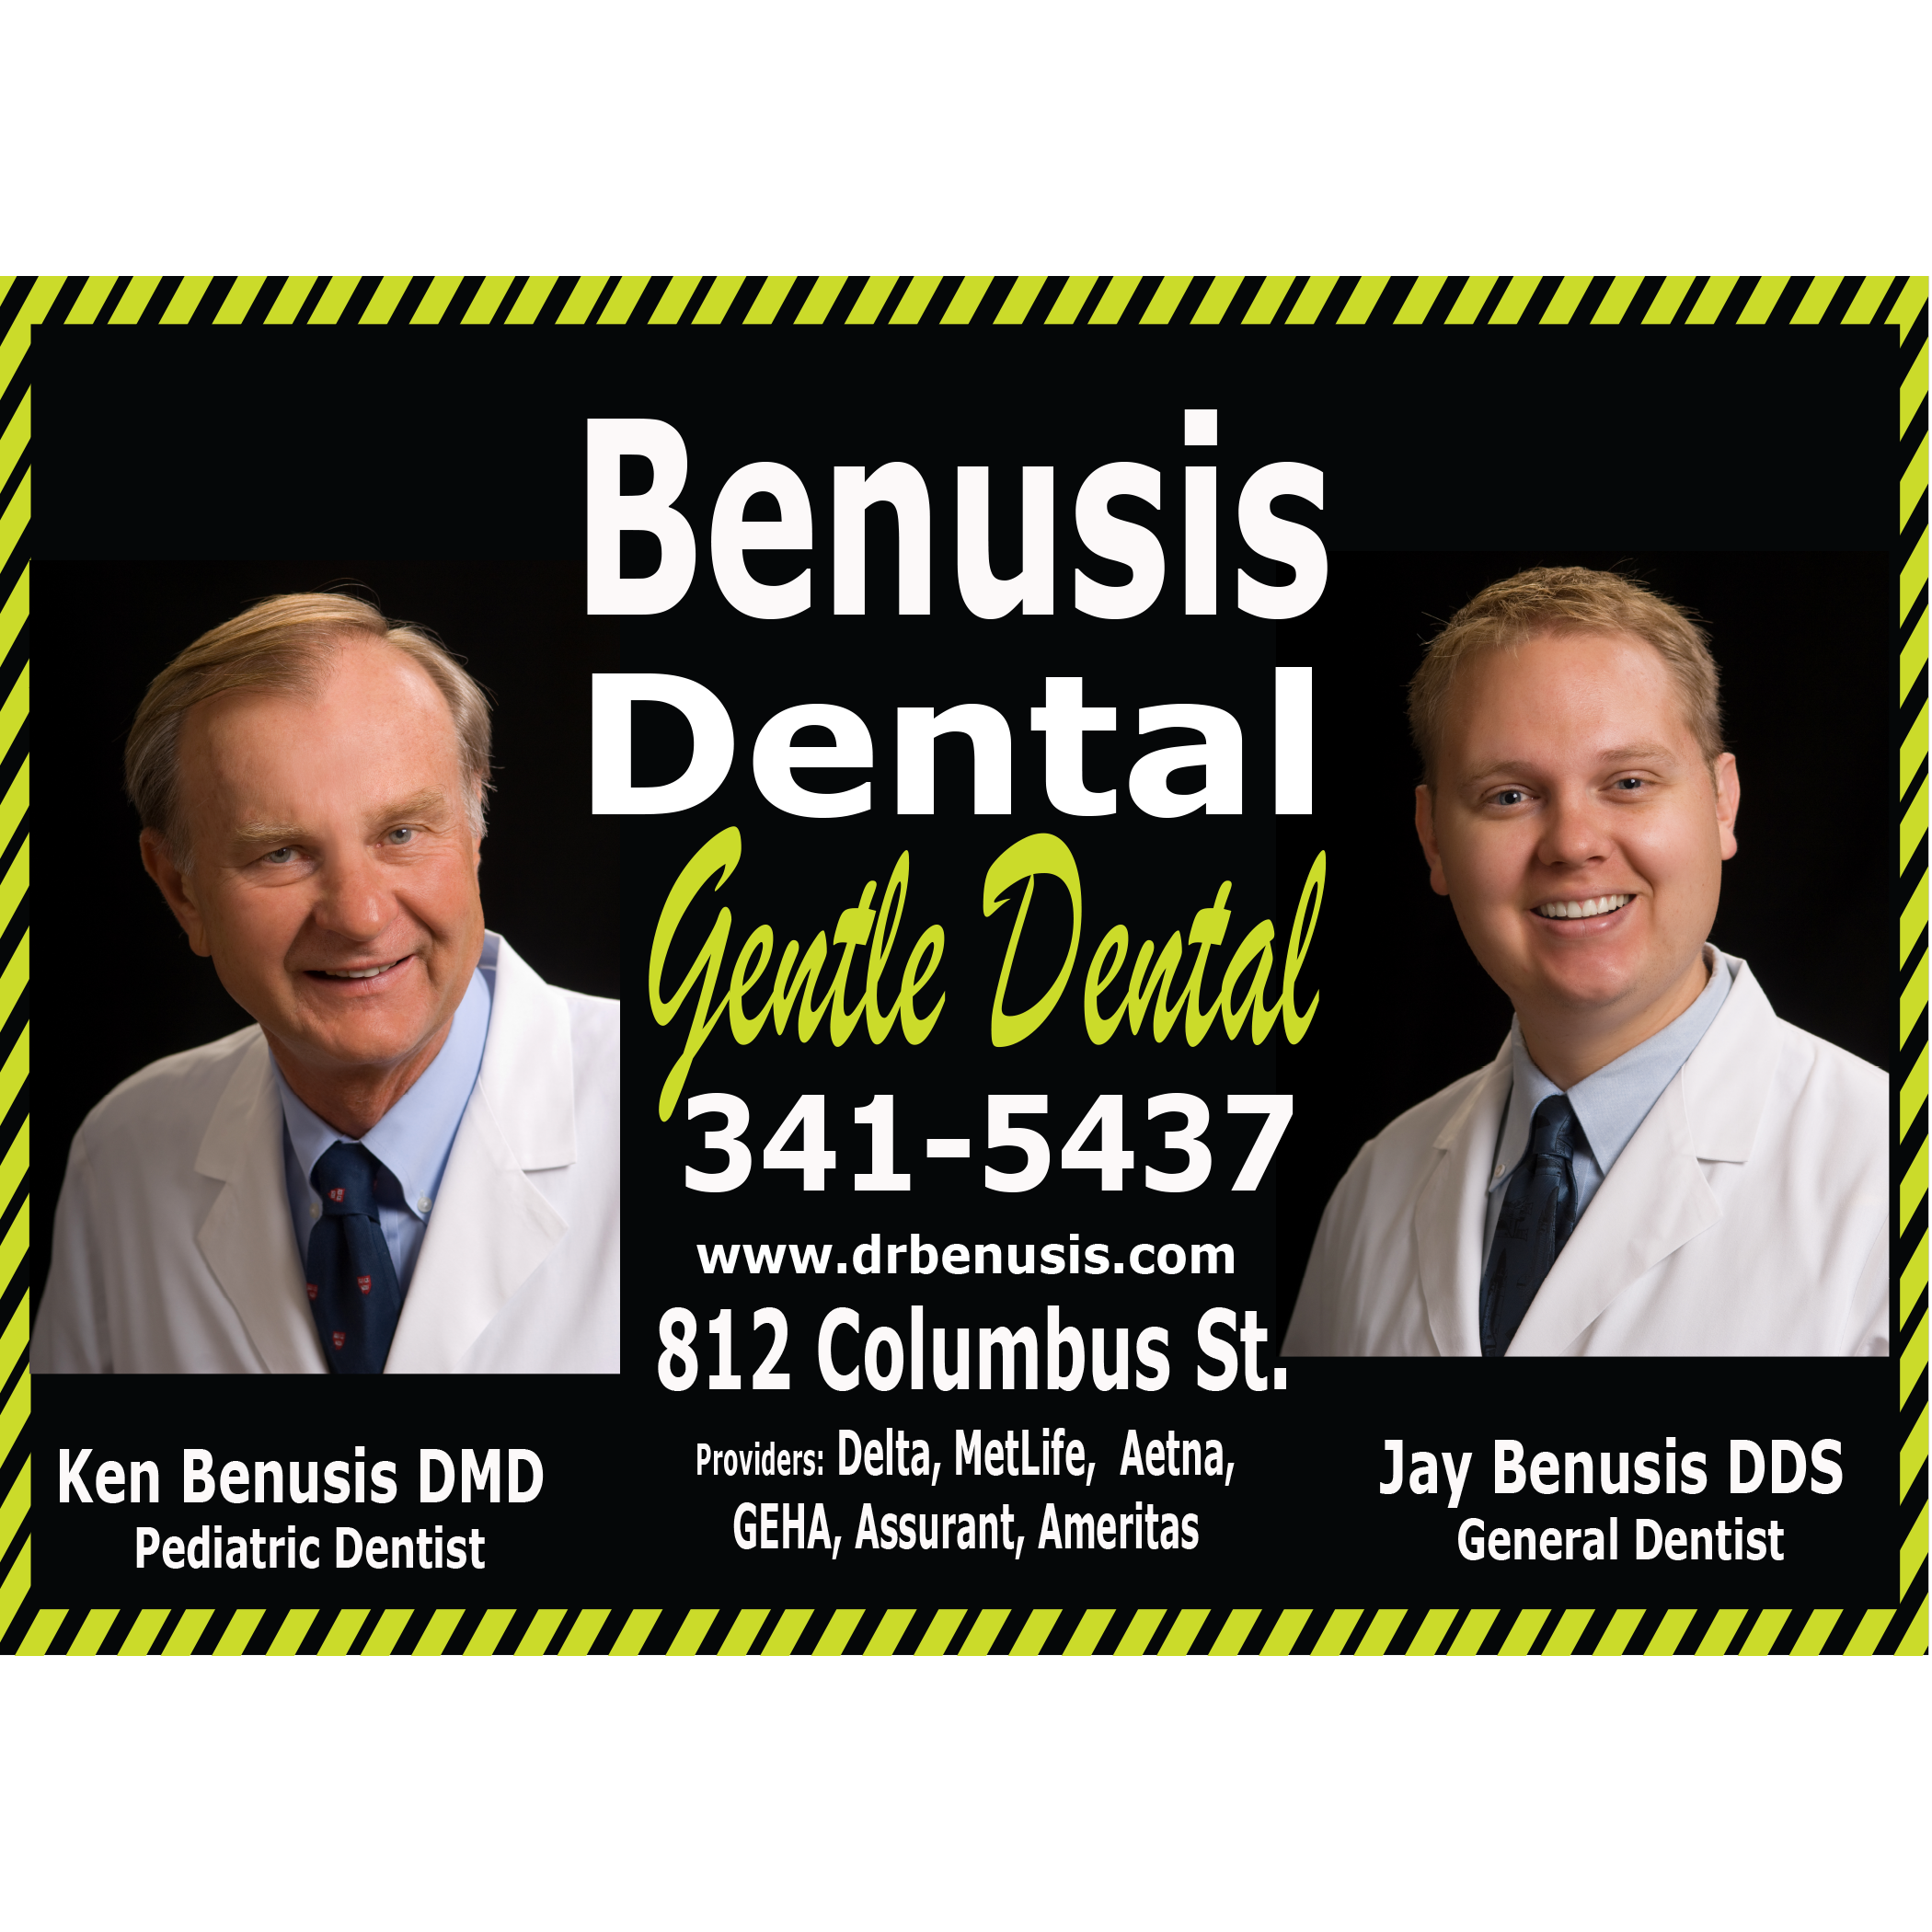 Benusis Dental ProfLLC